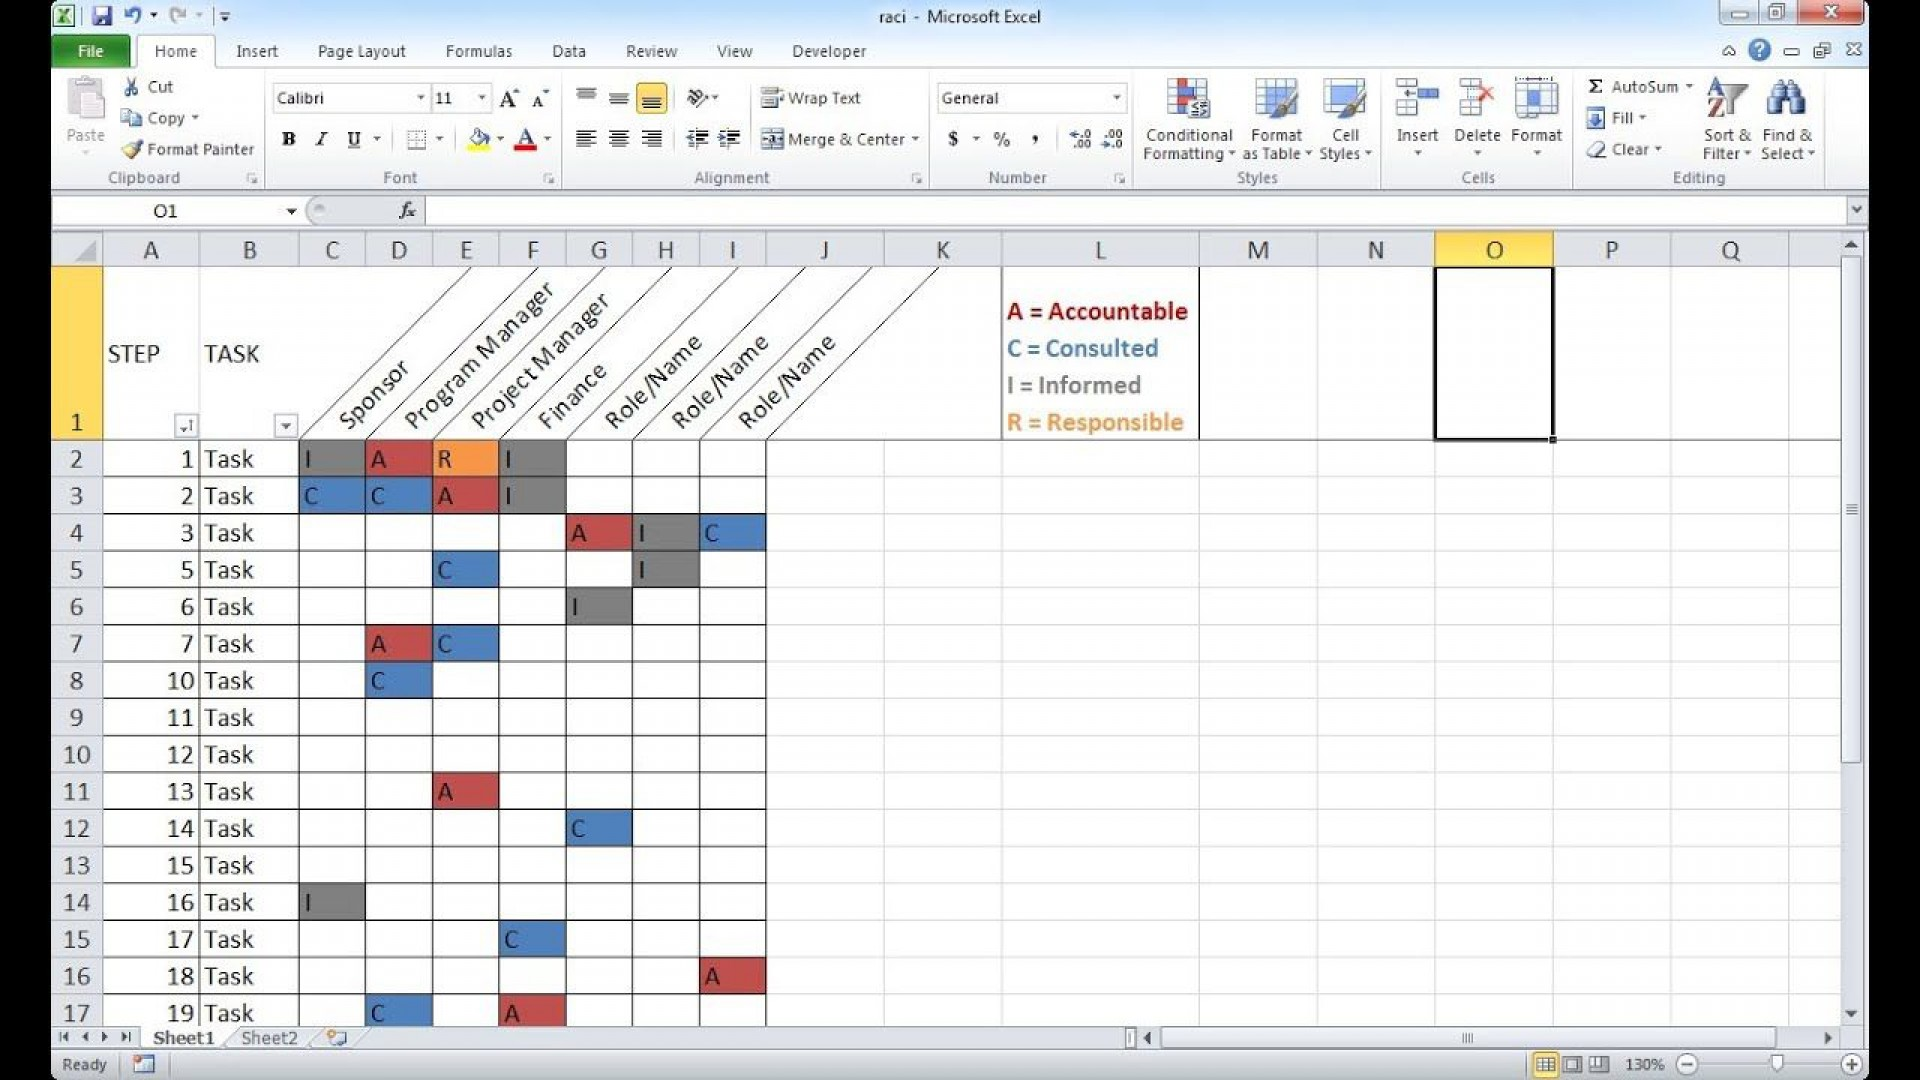 007 Breathtaking Role And Responsibilitie Template Excel Free High Definition 1920